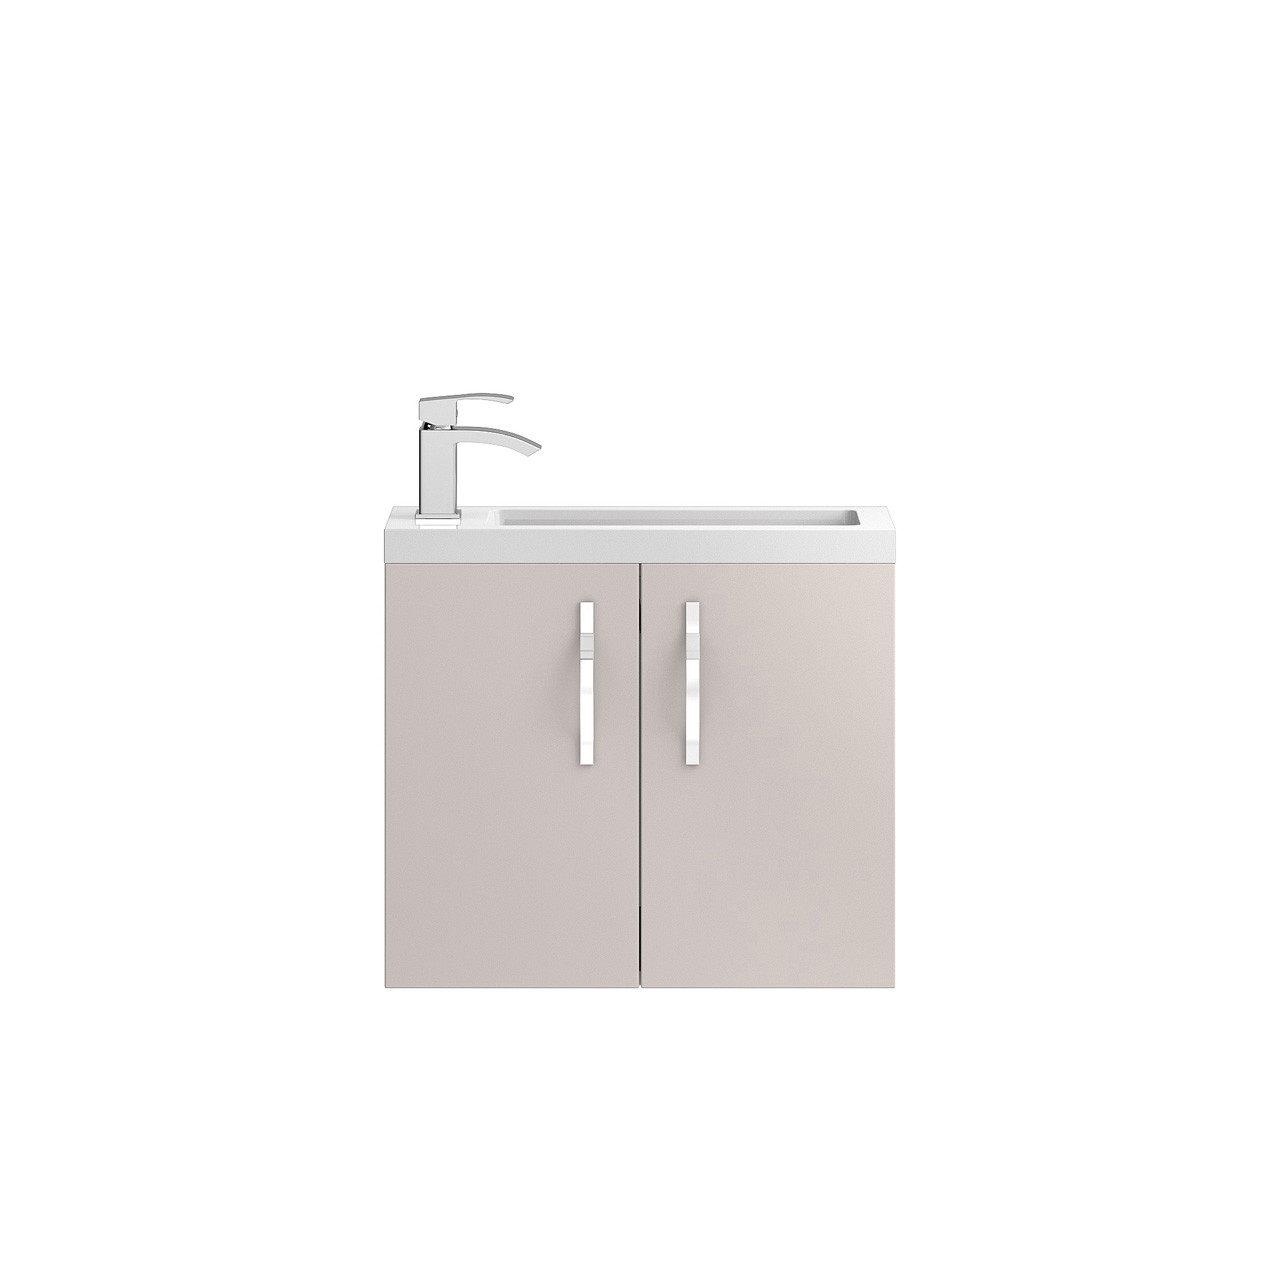 Hudson Reed Apollo Compact Cashmere Wall Hung 600mm Cabinet & Basin - FMA736C & PMB303